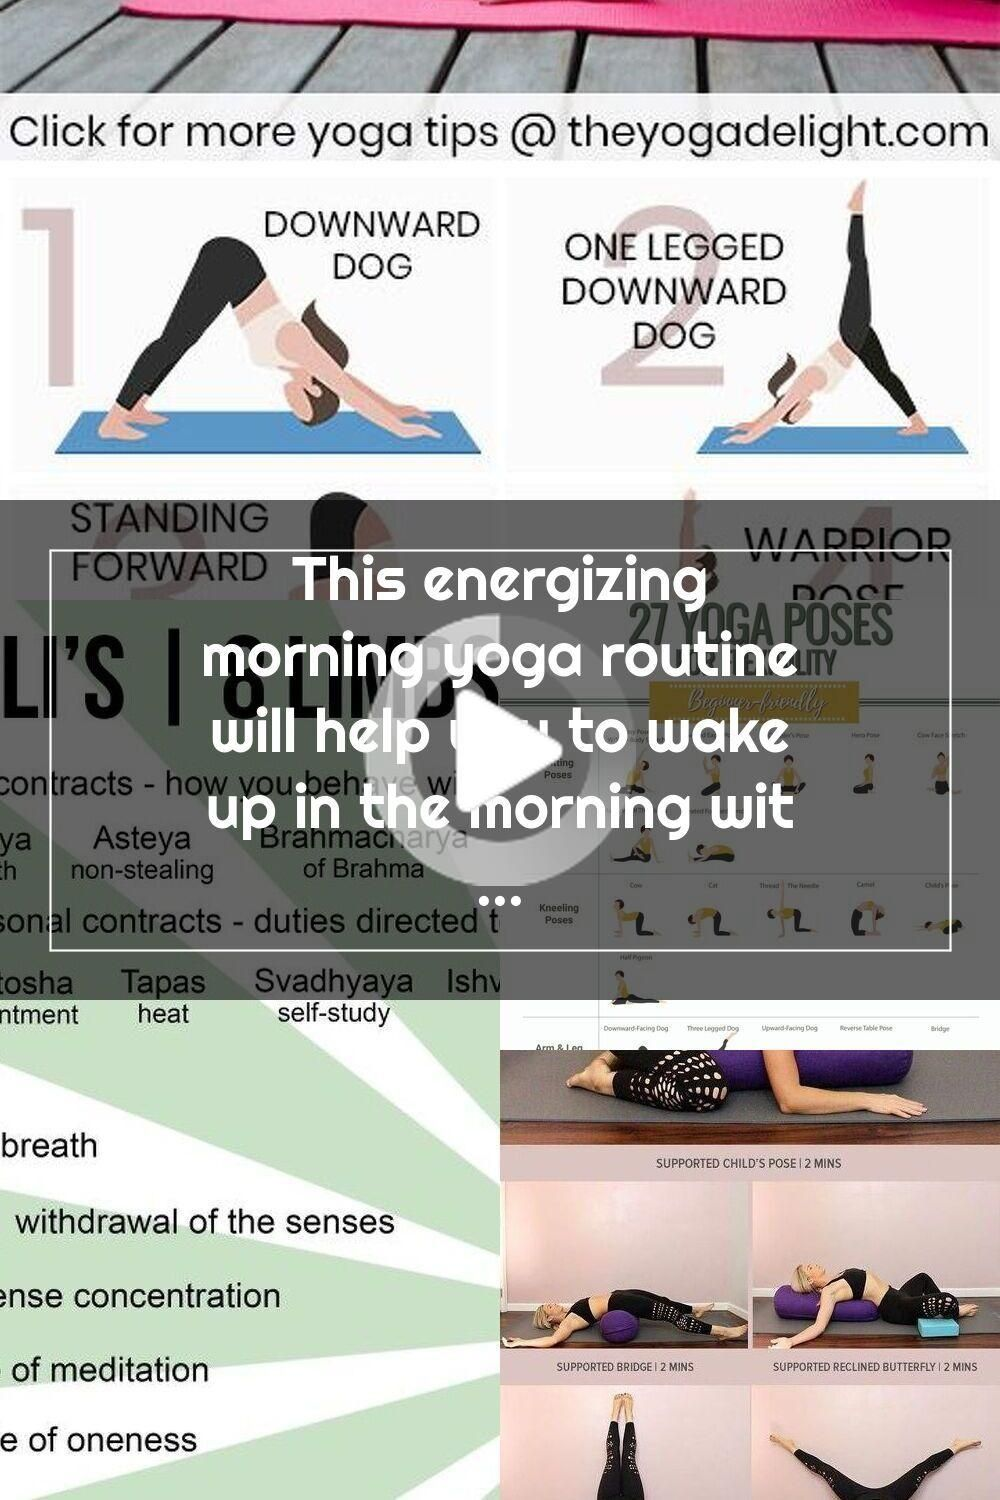 This energizing morning yoga routine will help you to wake up in the morning without feeling